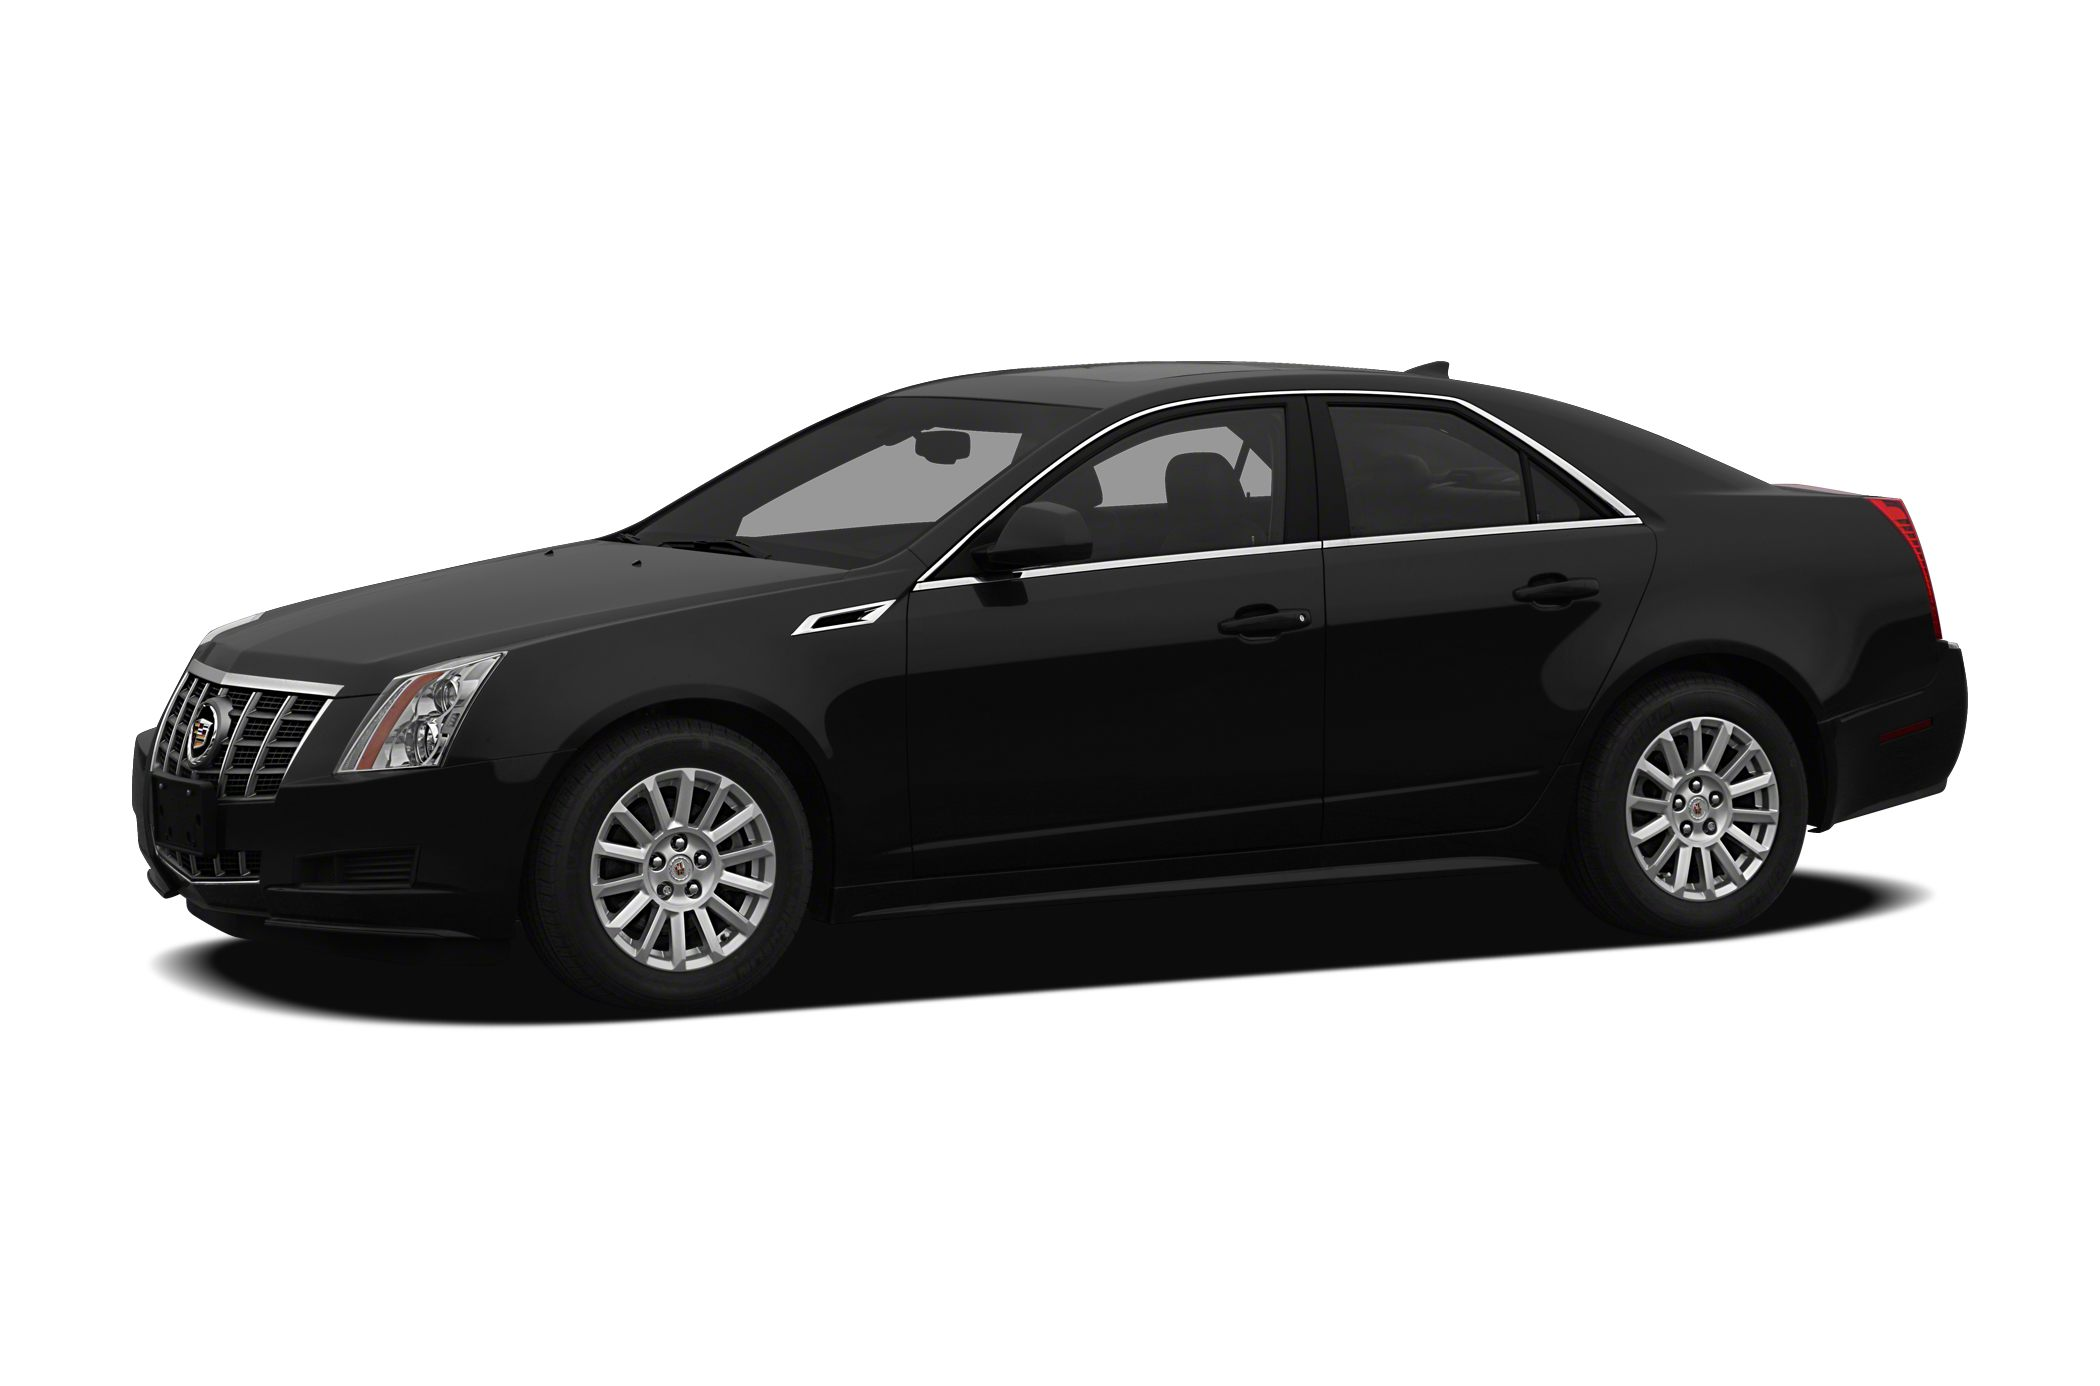 2012 Cadillac CTS Performance Coupe for sale in Overland Park for $24,900 with 59,424 miles.